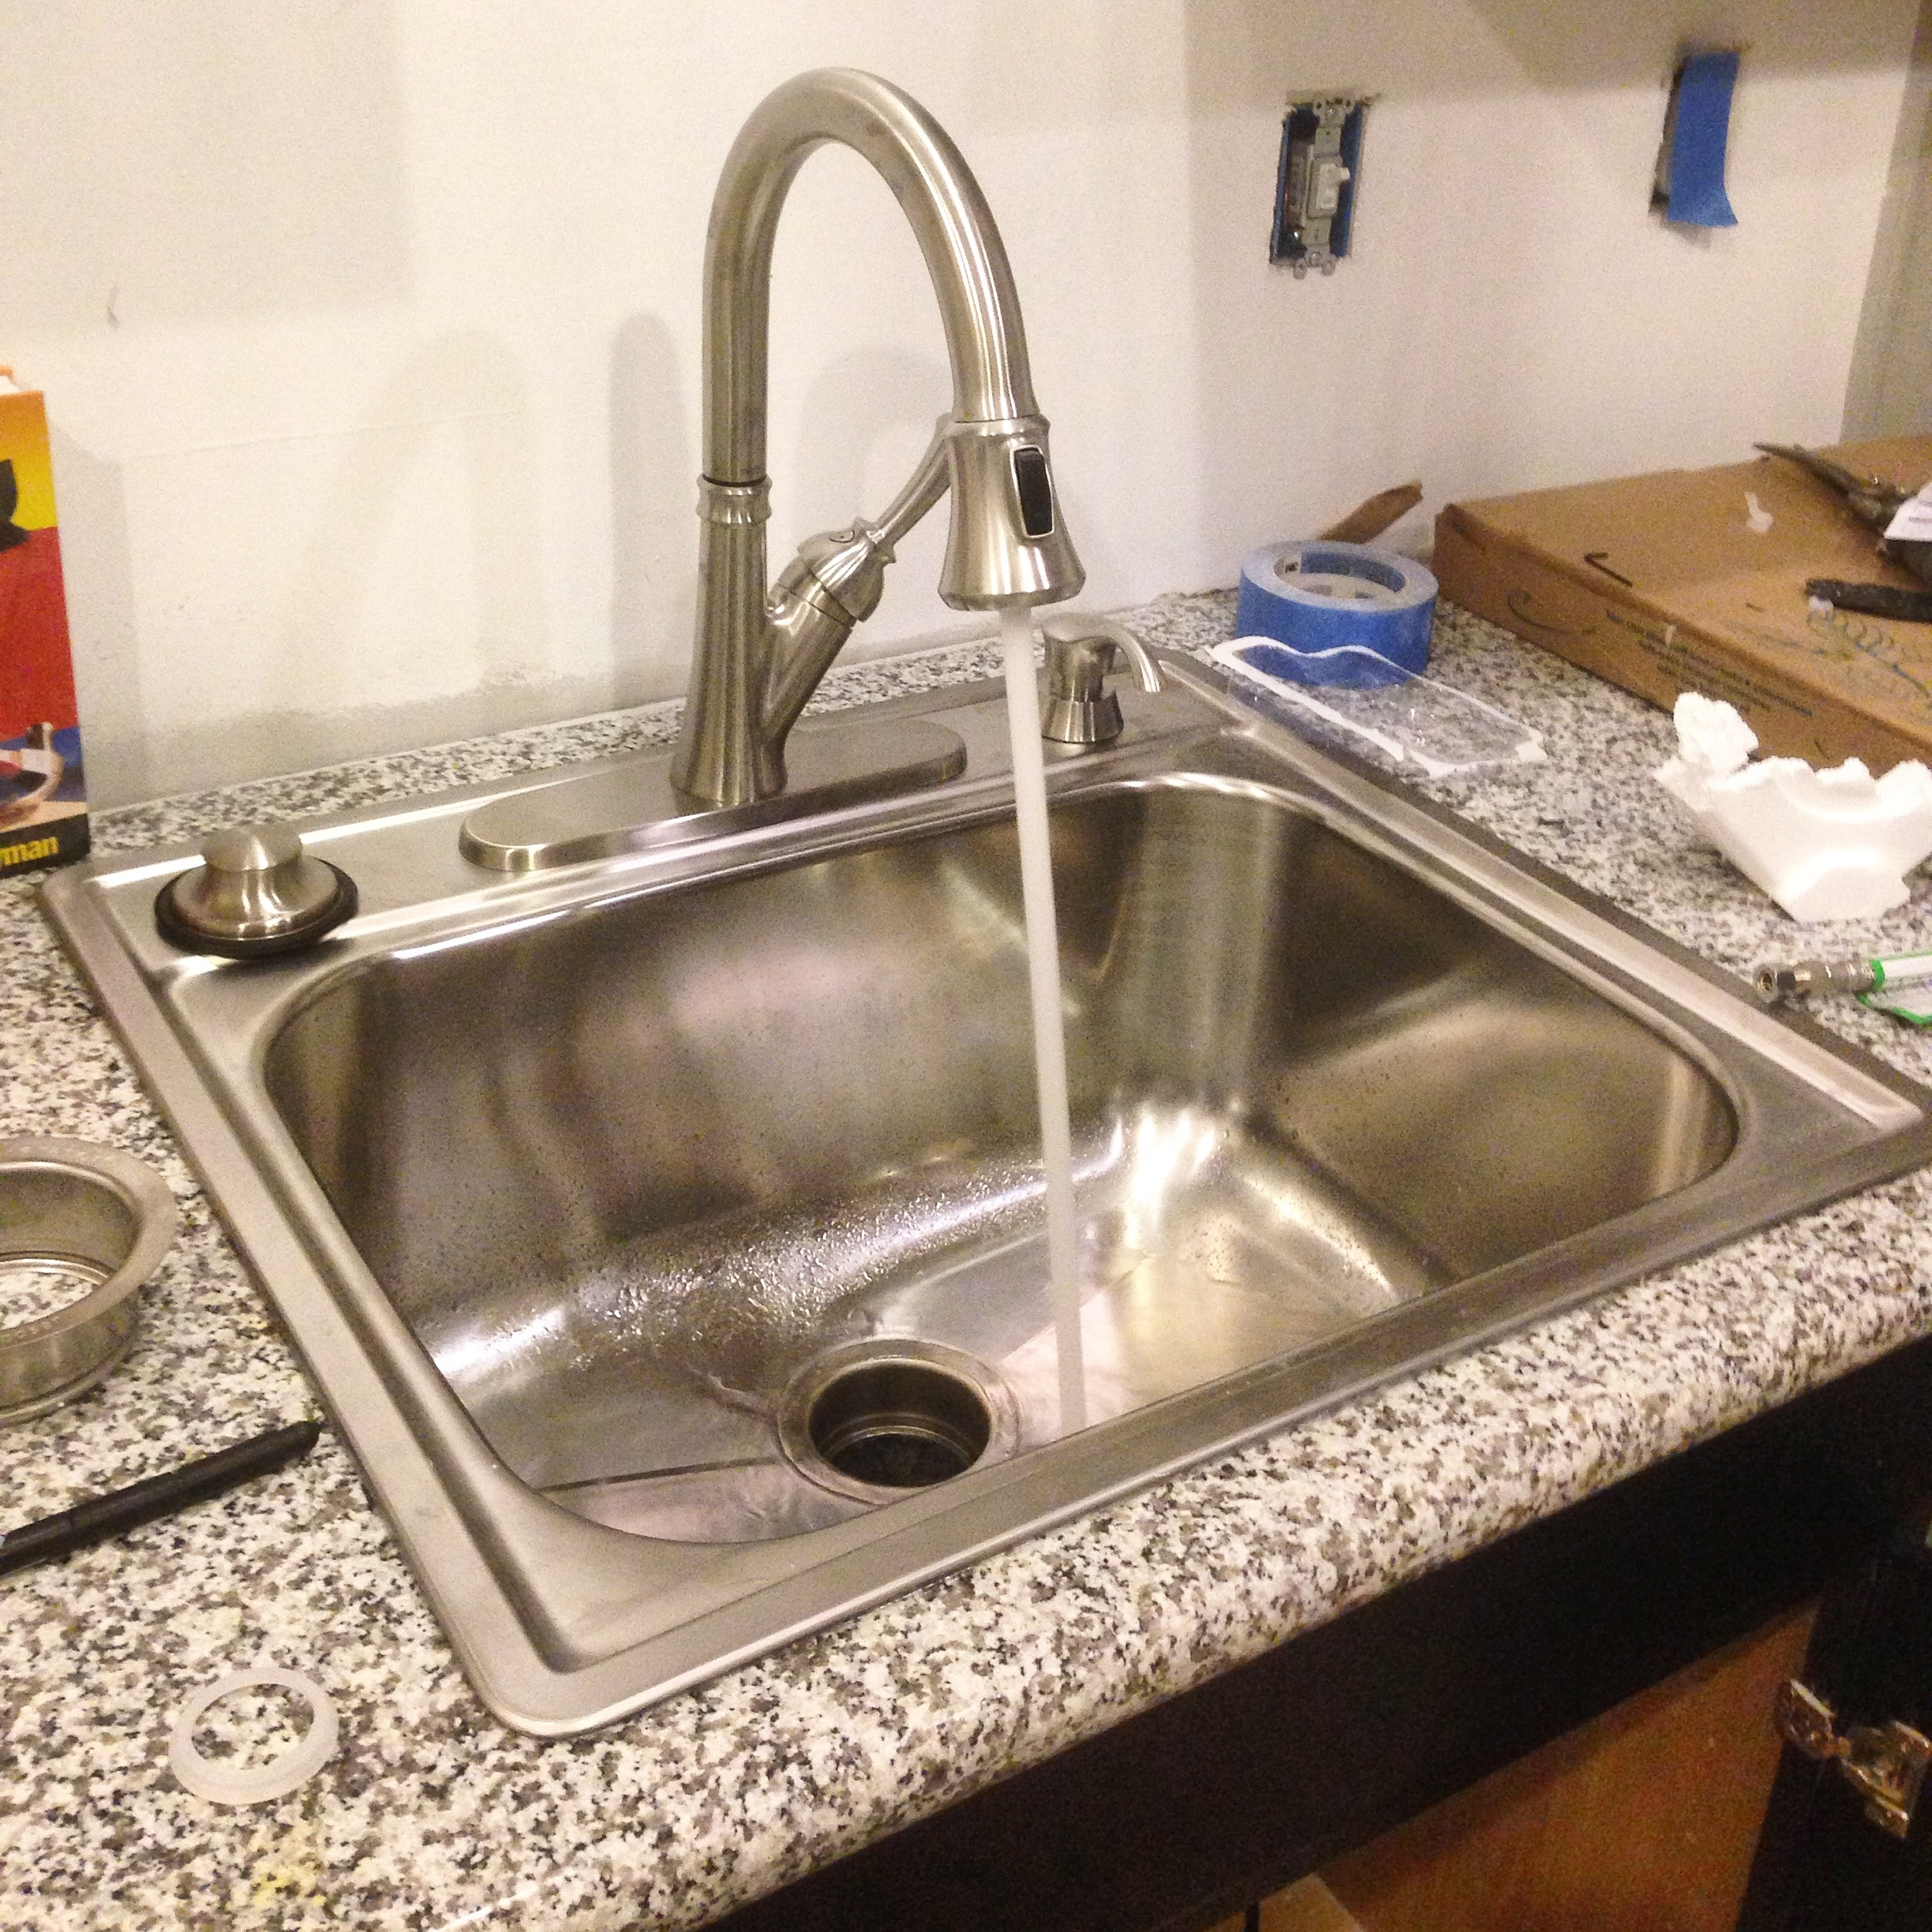 We Have A Working Kitchen Sink! And Dishwasher! And We Finally Have  Countertops (granite, I May Add). Aside From Some Painting, A Subway Tile  Backsplash, ...